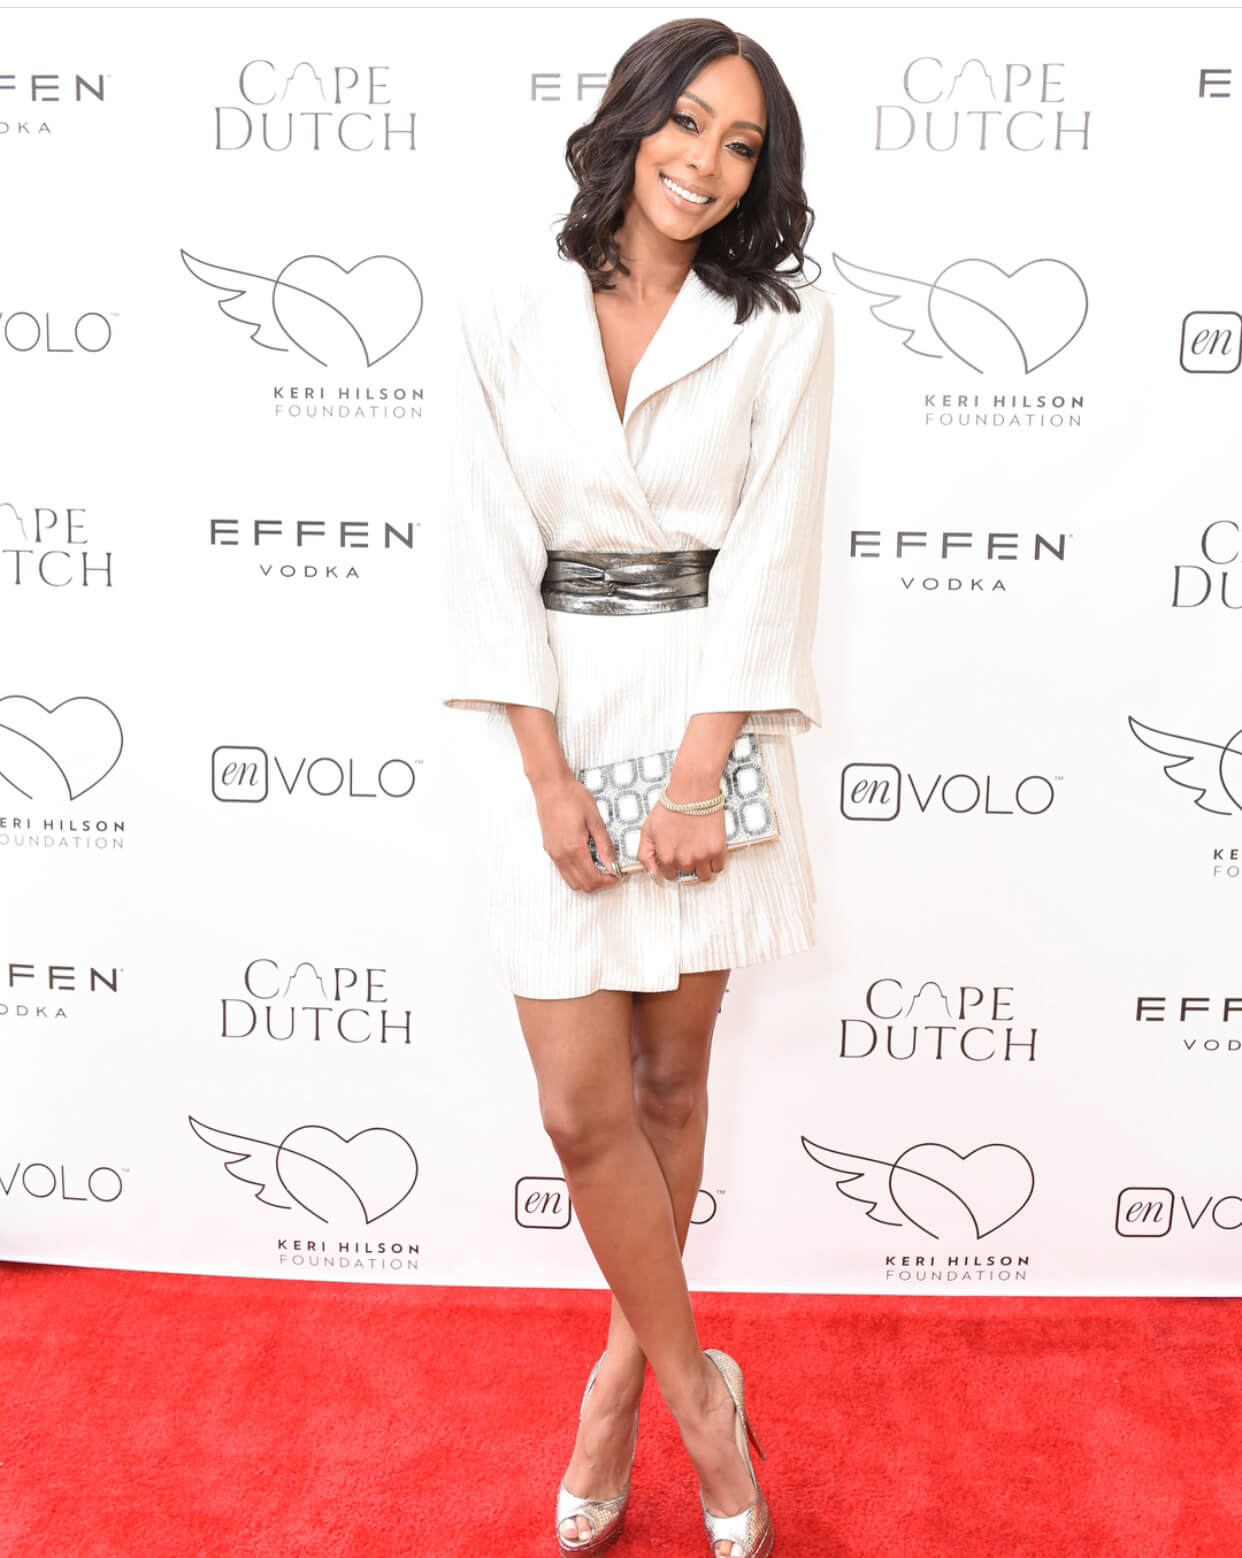 Keri Hilson hot photo